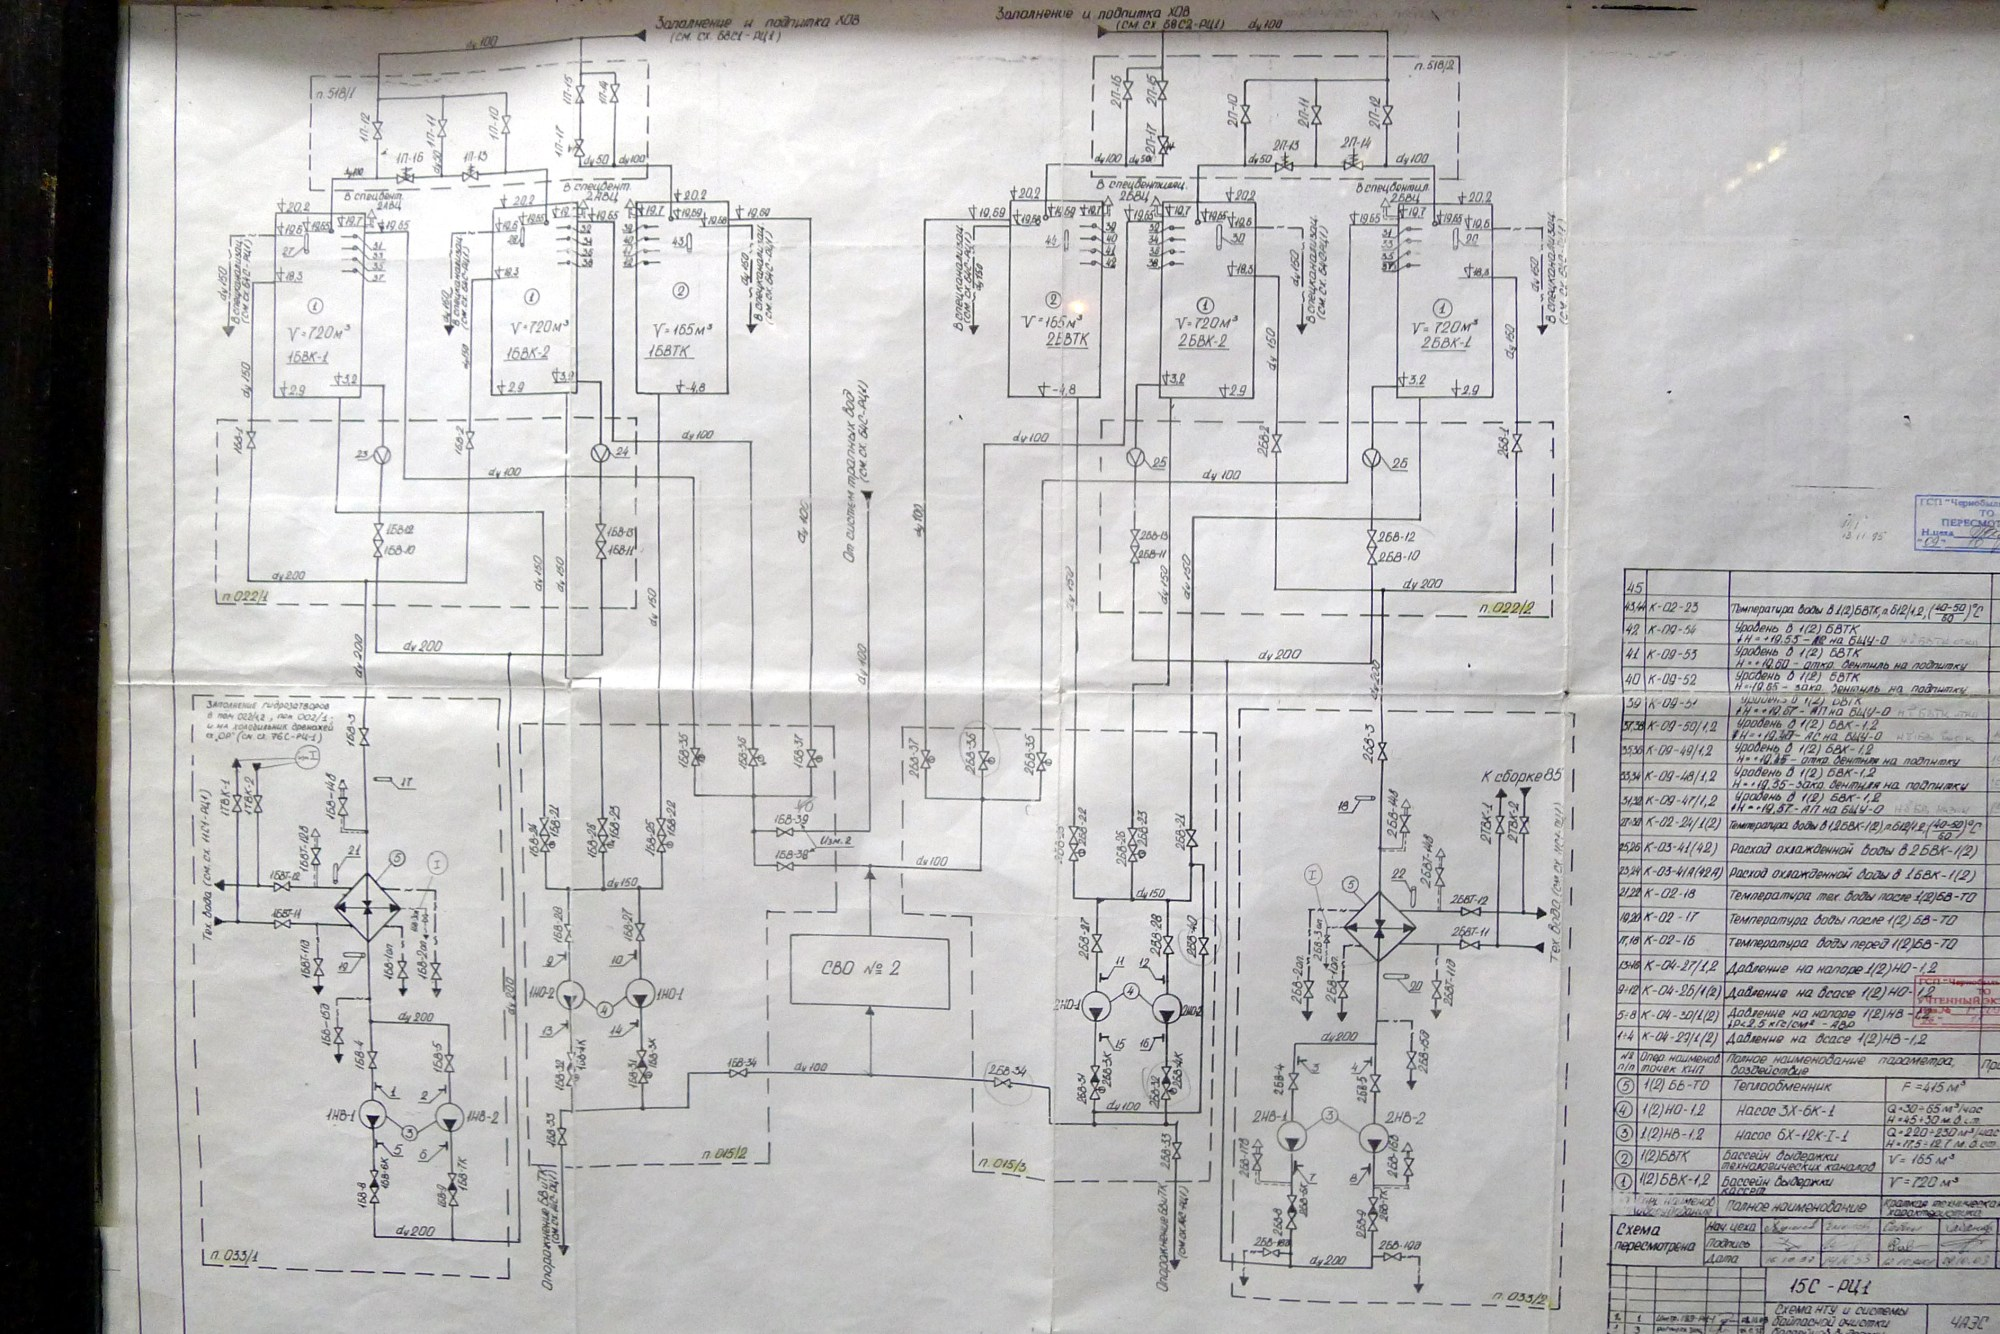 hight resolution of inside chernobyl nuclear power plant 2011 part ii deaerator corridor and unit 1 control room special nuclear material